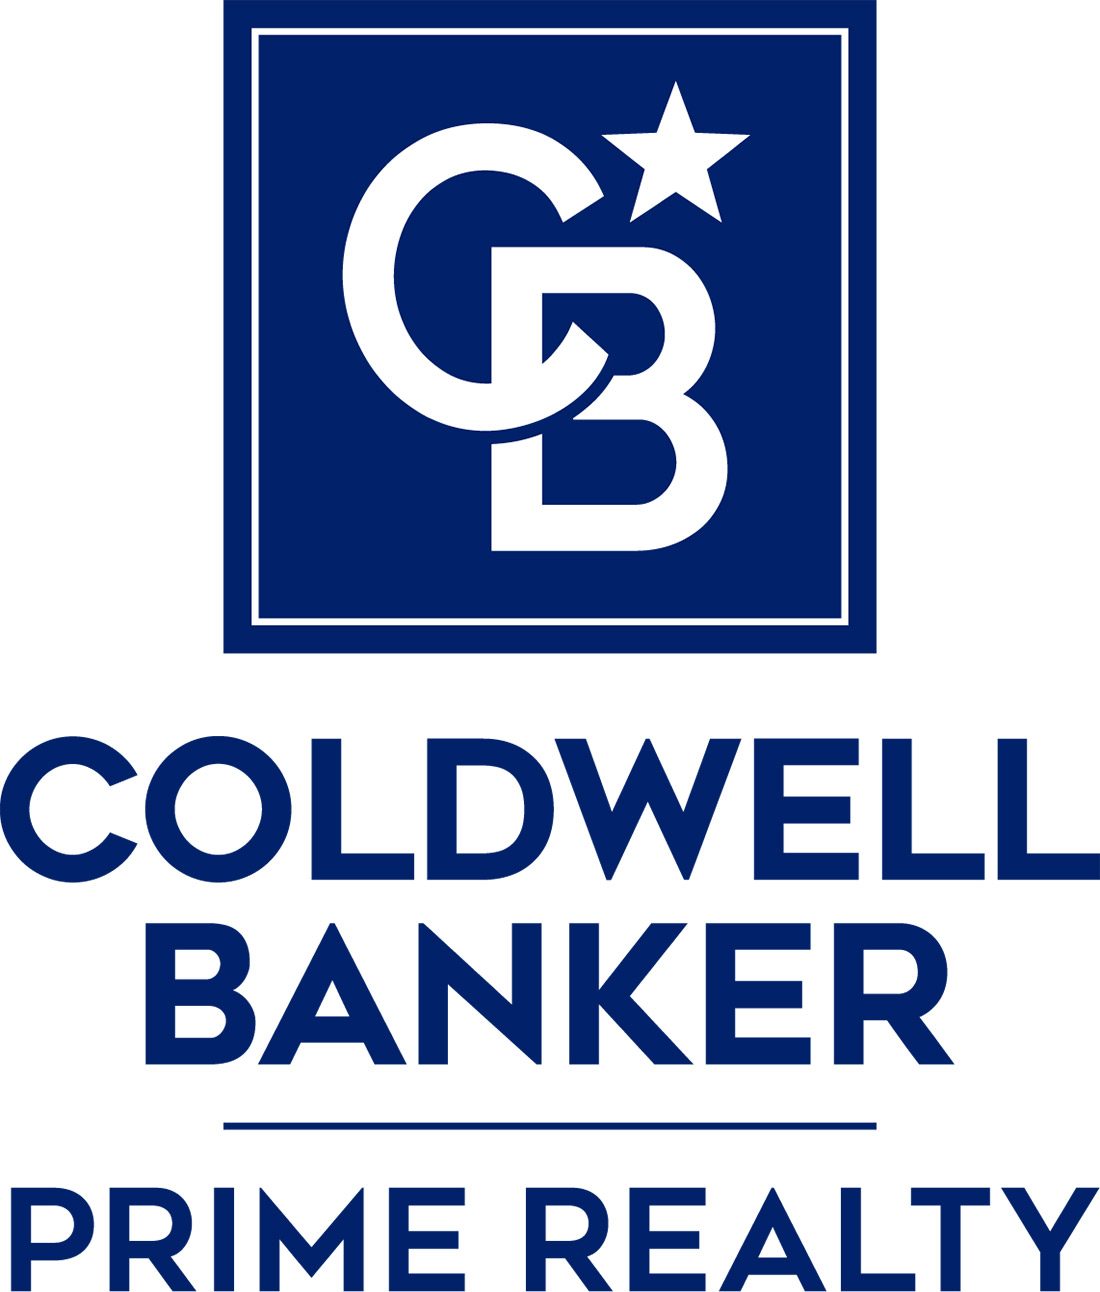 Prime House Values - Coldwell Banker Prime Realty - Carbondale, IL Logo